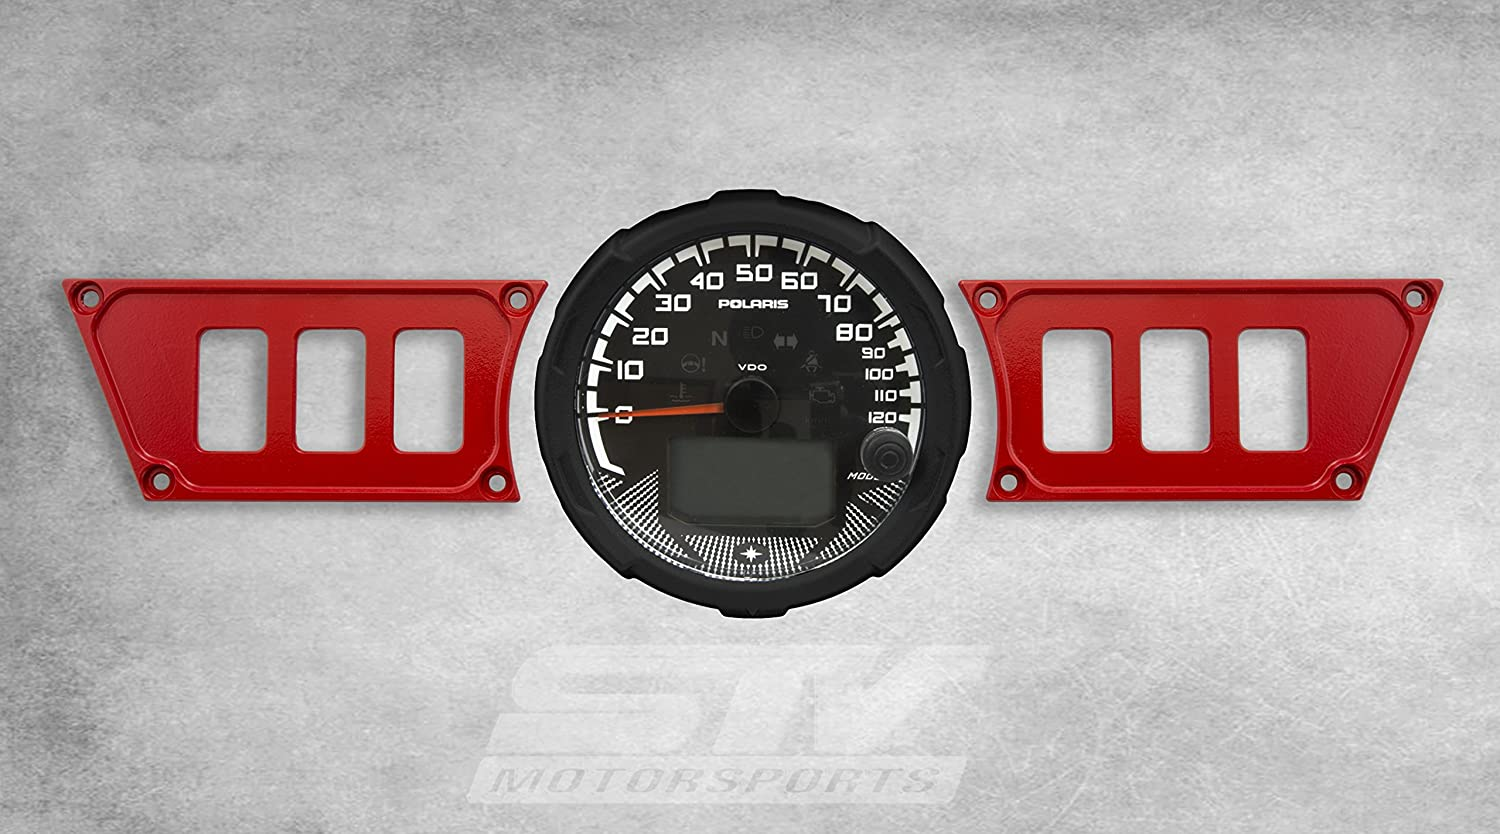 STV Motorsports Custom Aluminum Red Dash Panel for Polaris RZR XP 1000 with 6 Switch Openings (no switches included) 4333041644